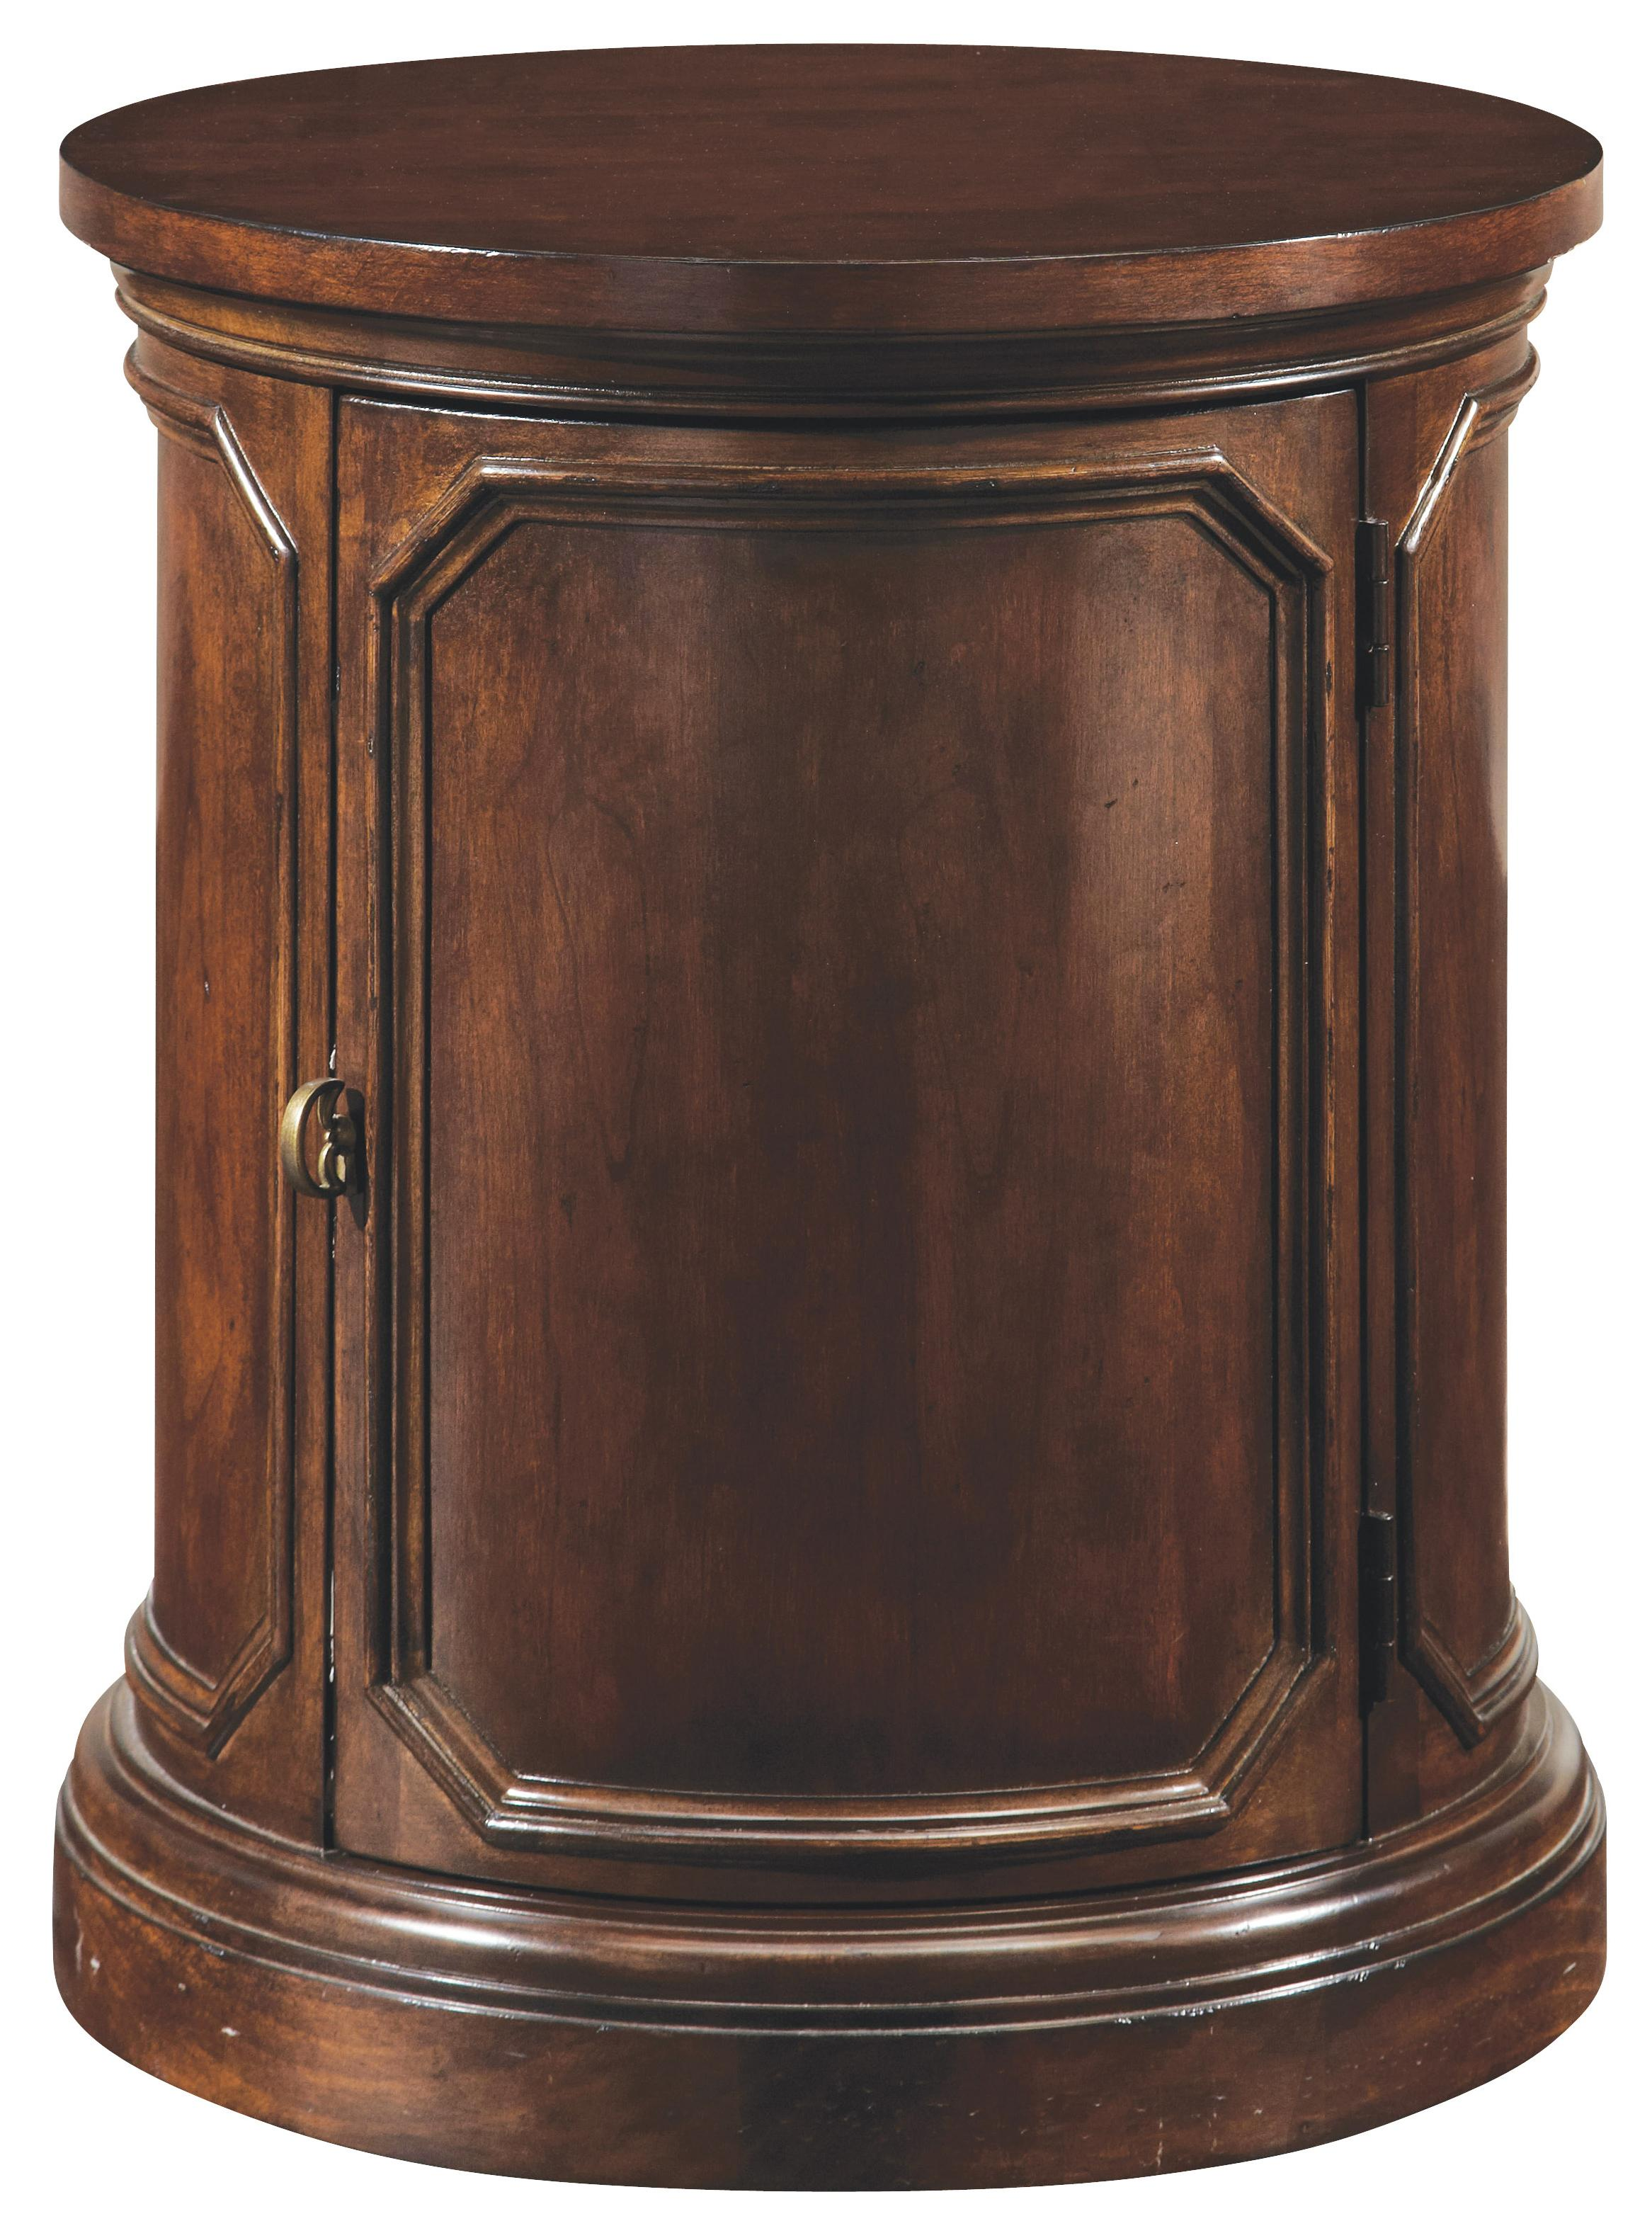 Belfort Signature Edwards Ferry Round Lamp Table - Item Number: 210303-2106